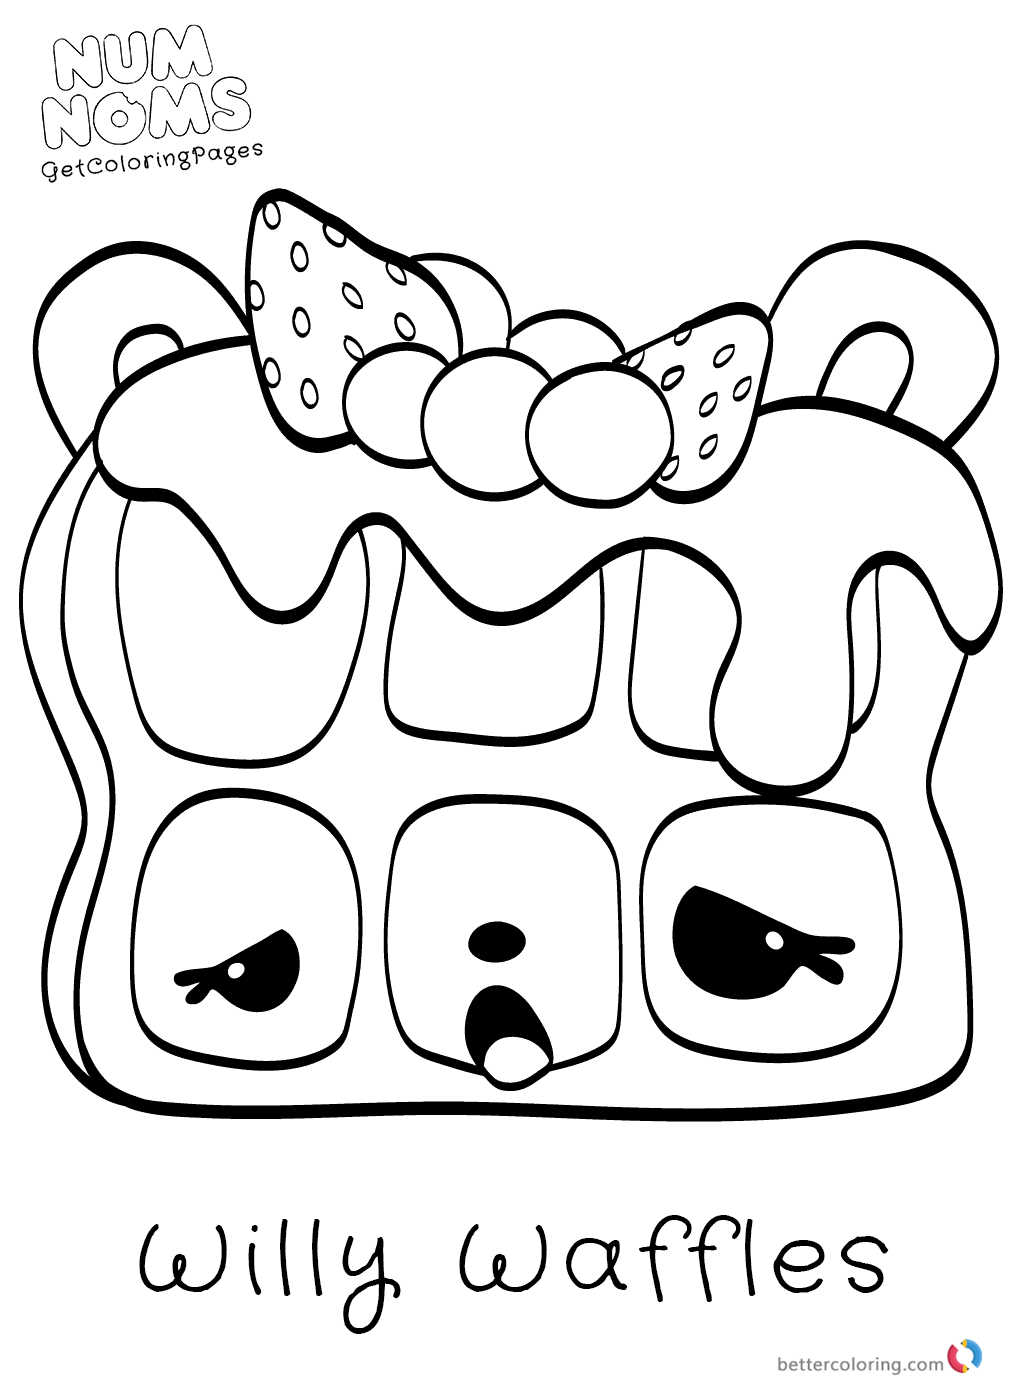 Num Noms Coloring Pages Free